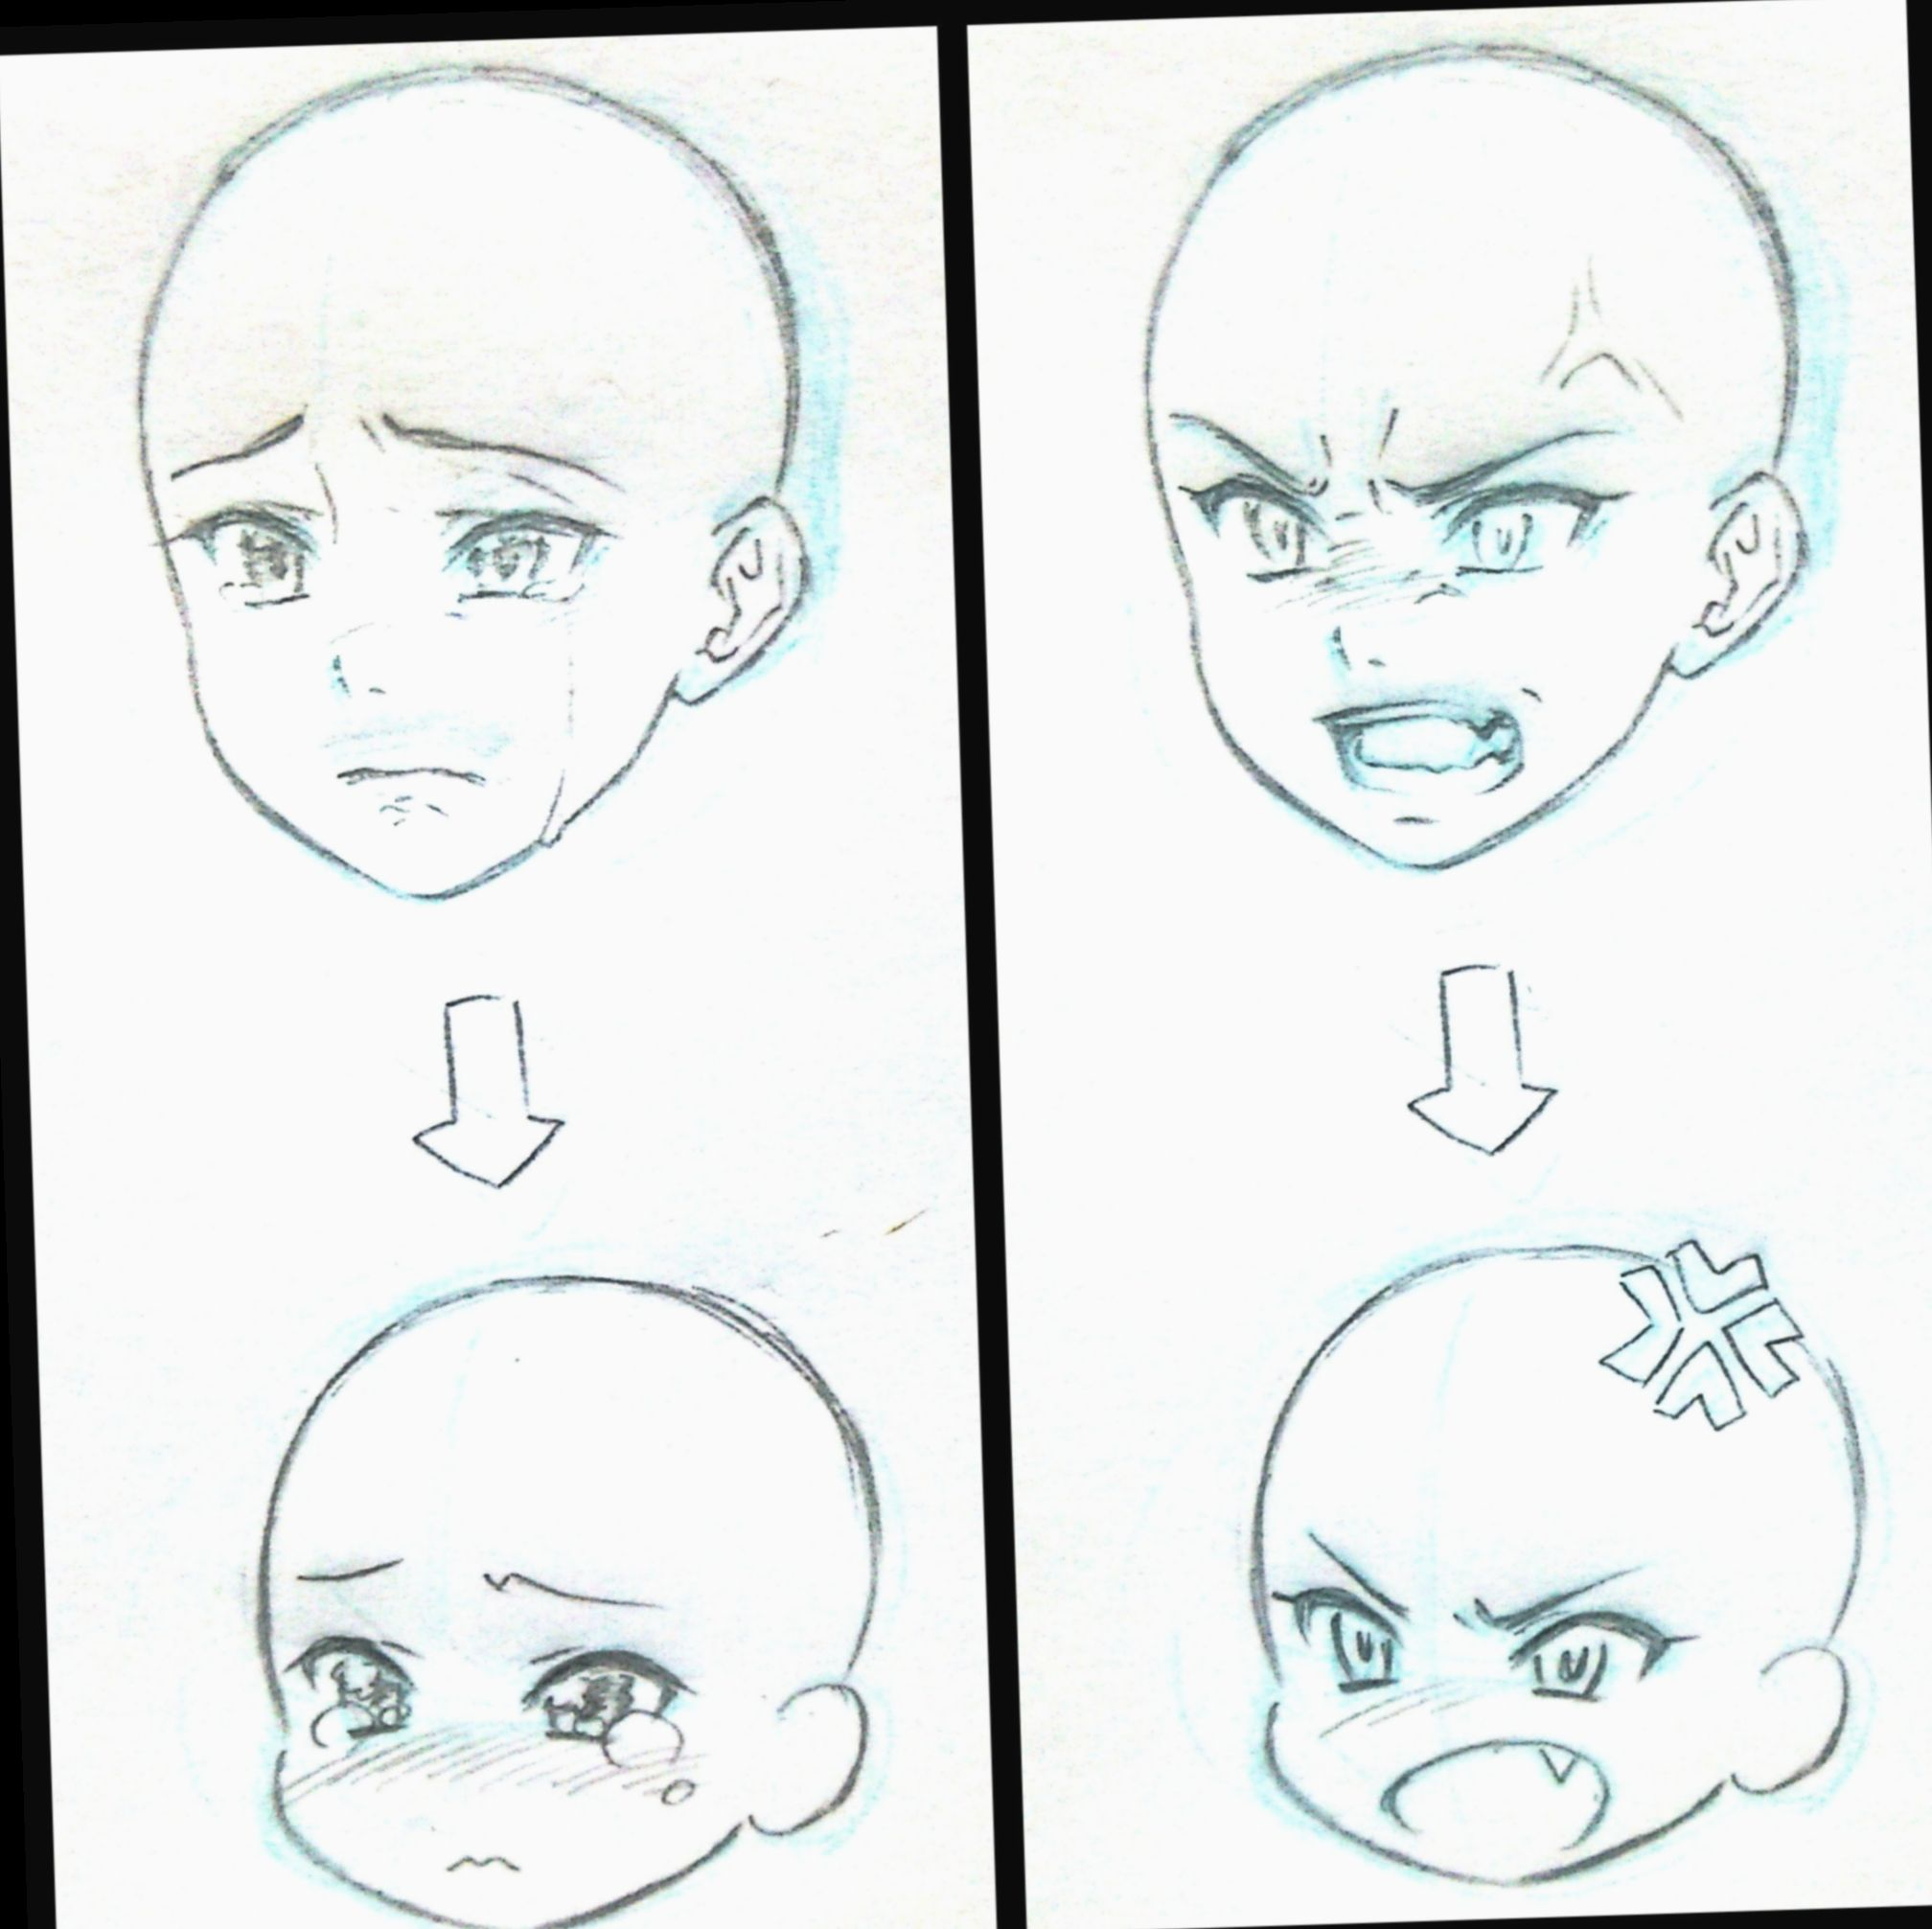 6 Anime Face Base Boy In 2020 Anime Drawings